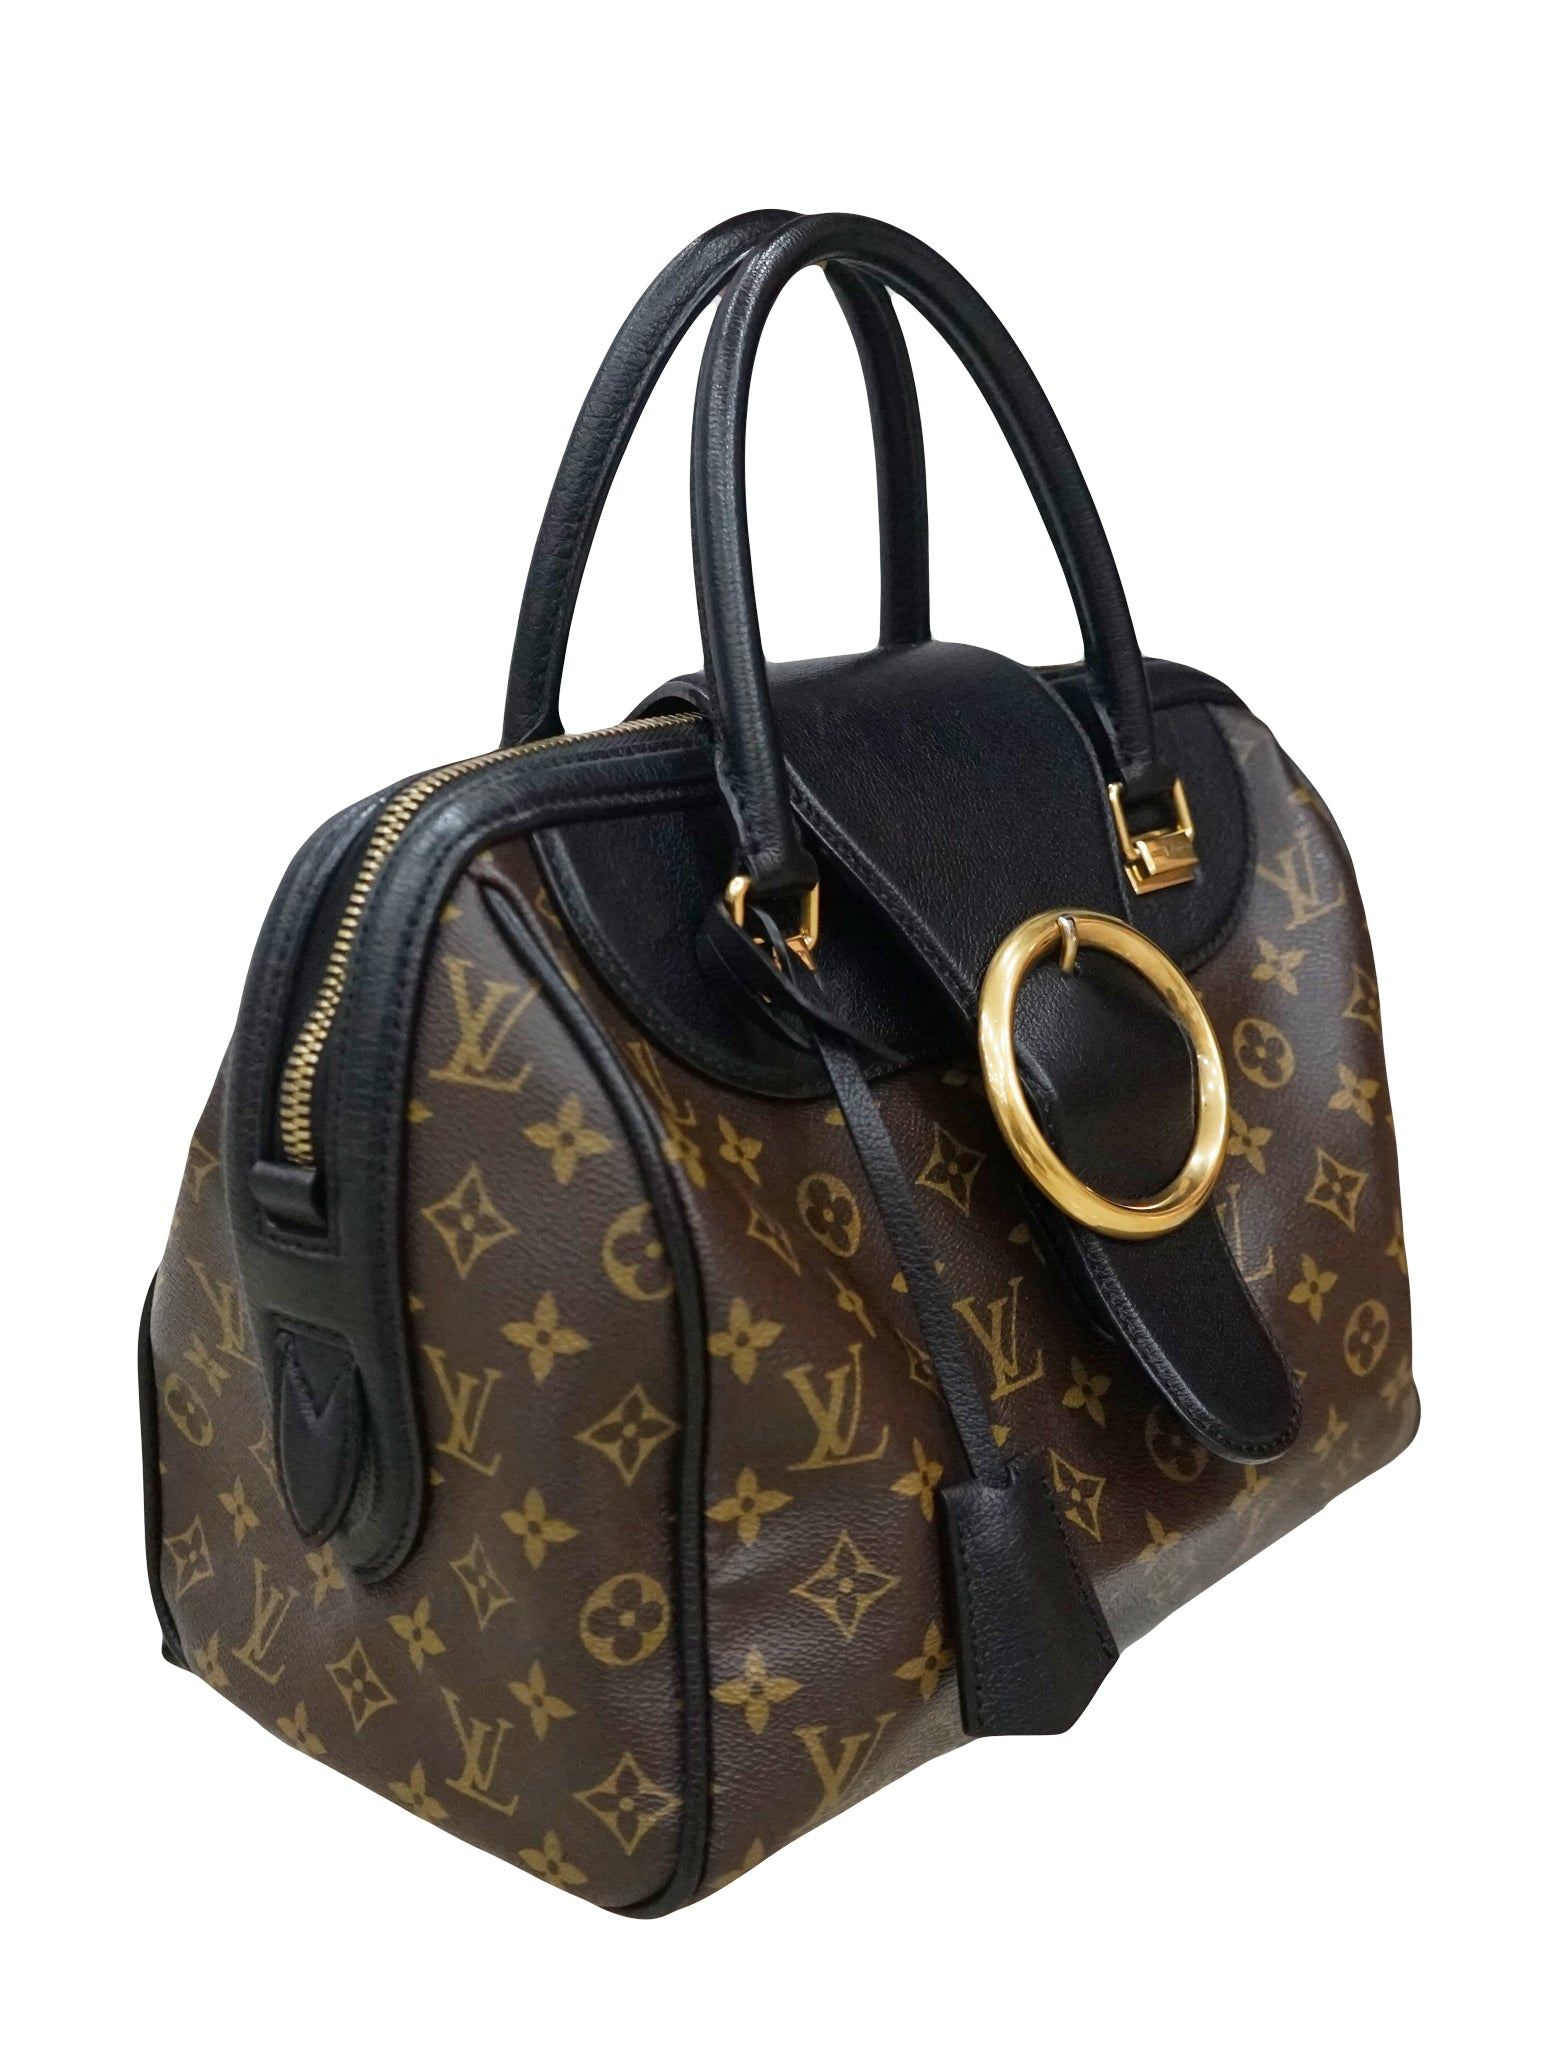 8690d22c472a LOUIS VUITTON LIMITED EDITION GOLDEN ARROW SPEEDY BAG – Kidsstyleforless